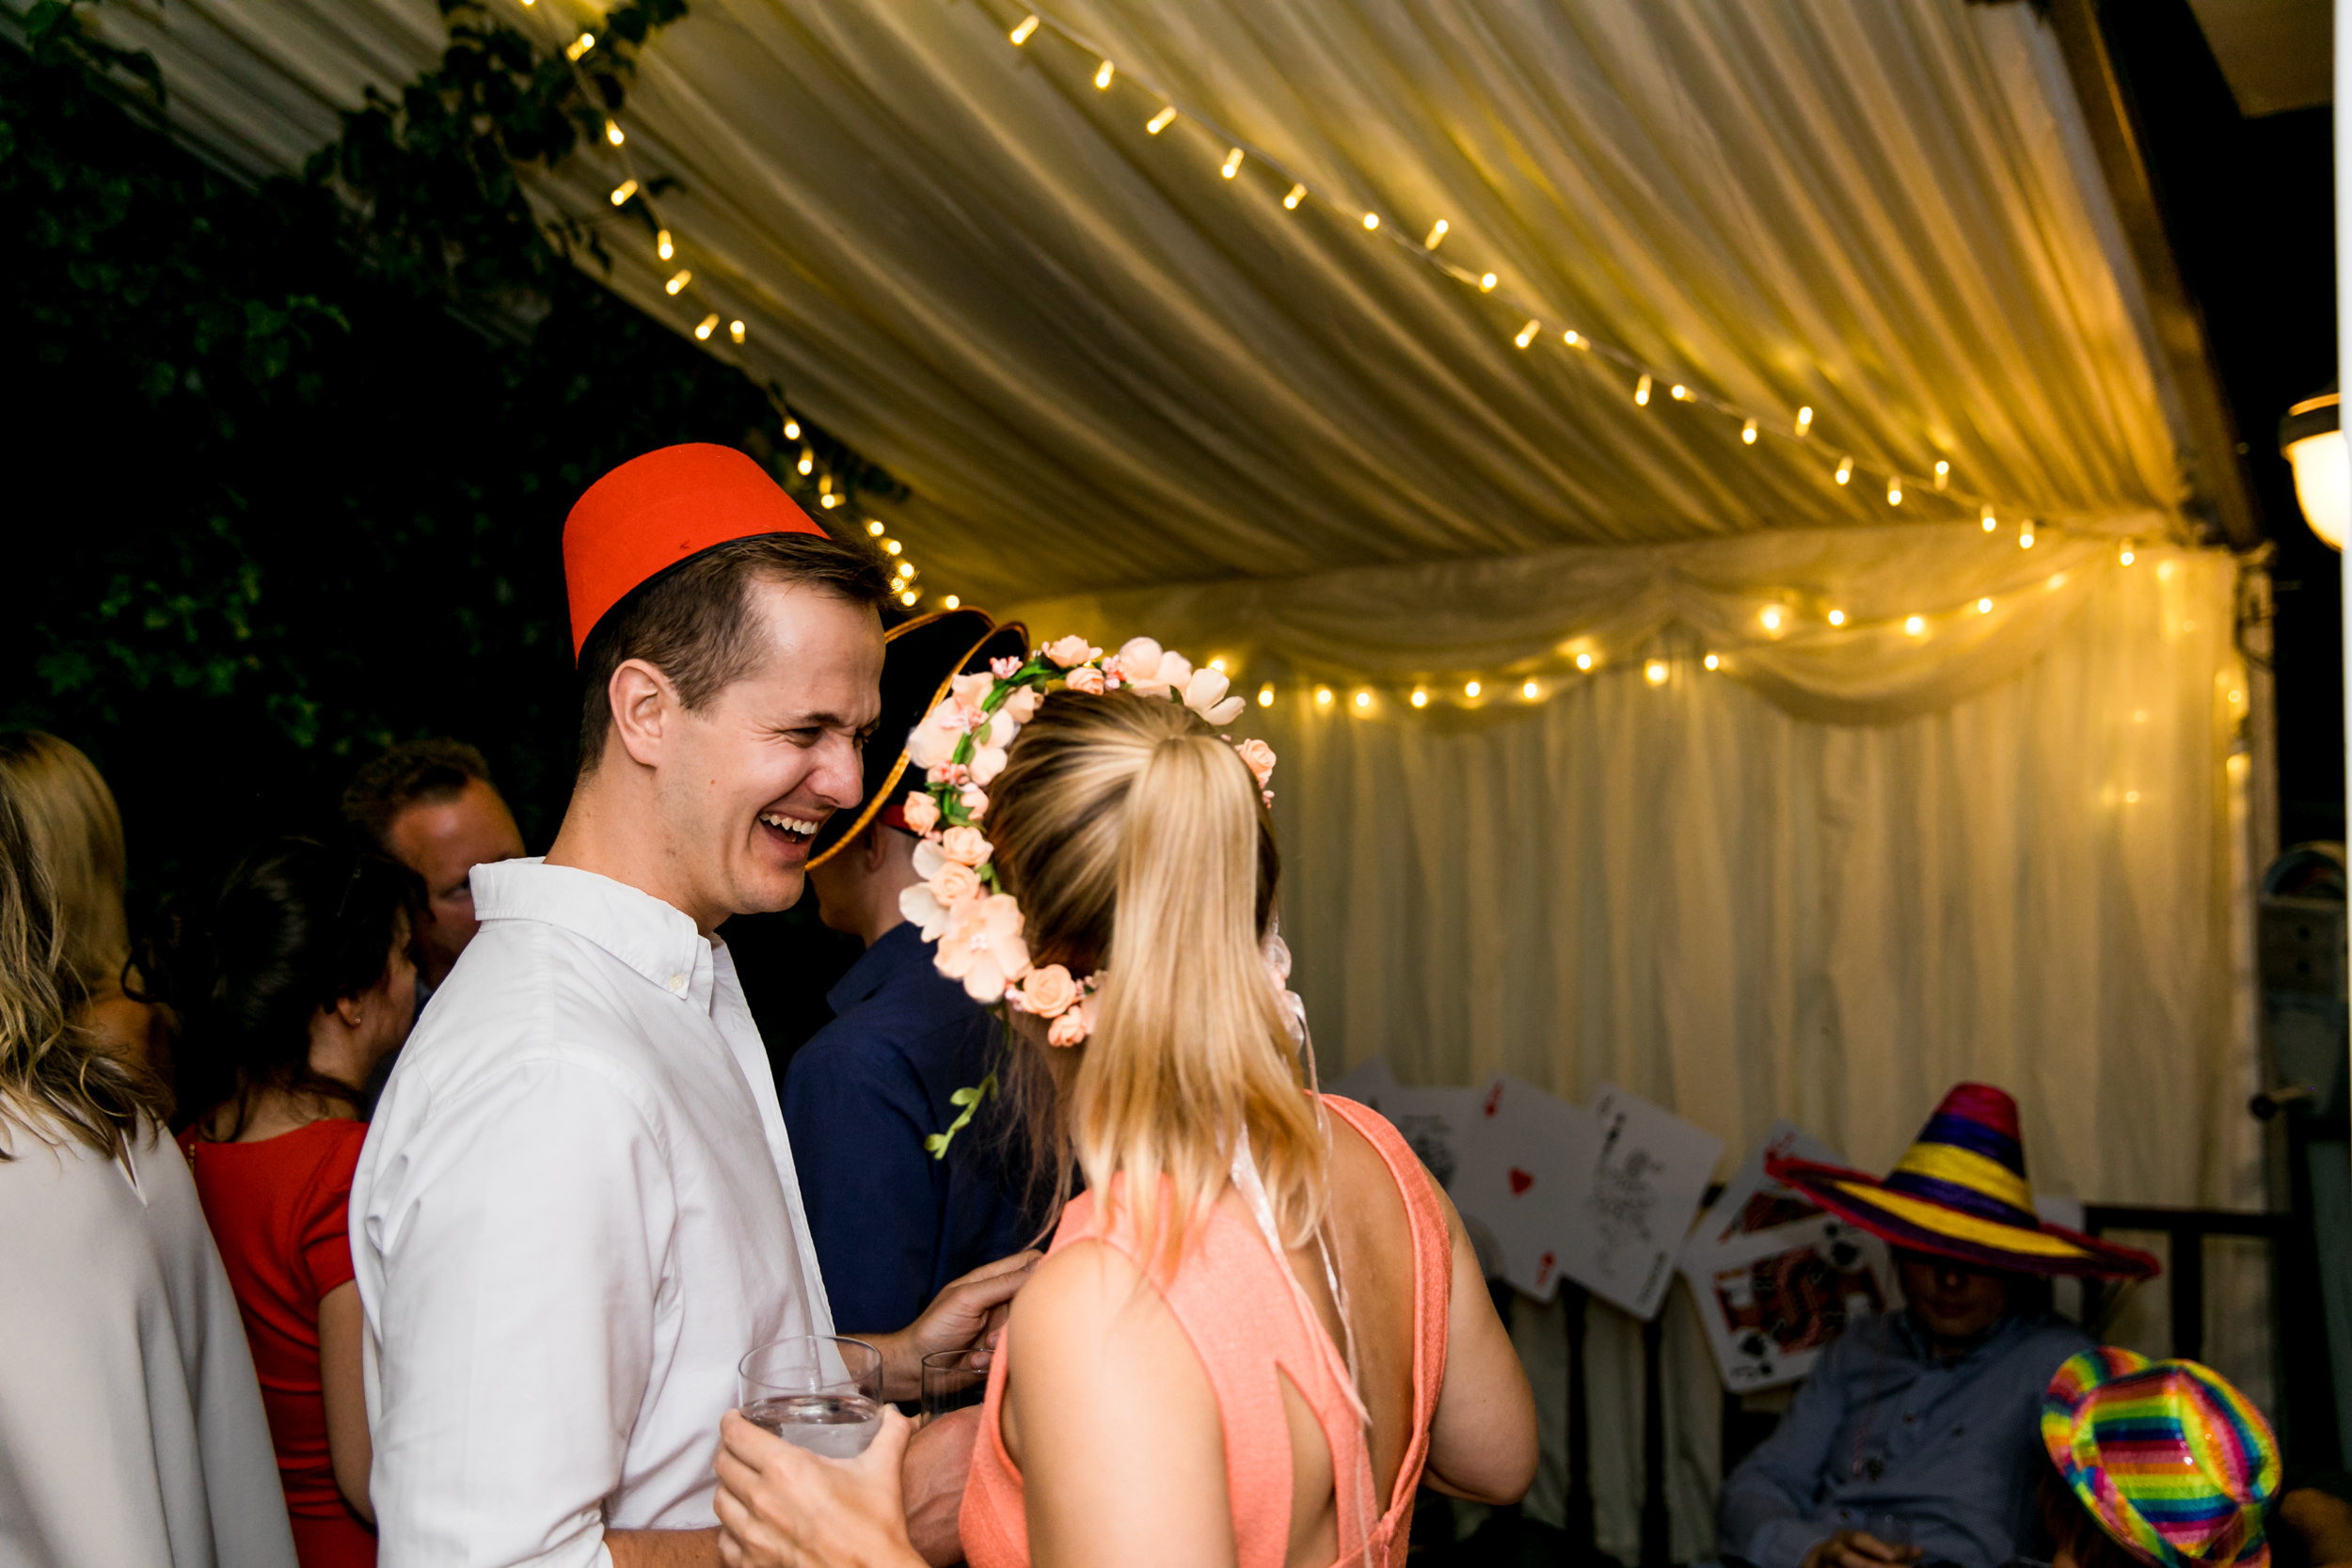 Kate's Party-276.jpg